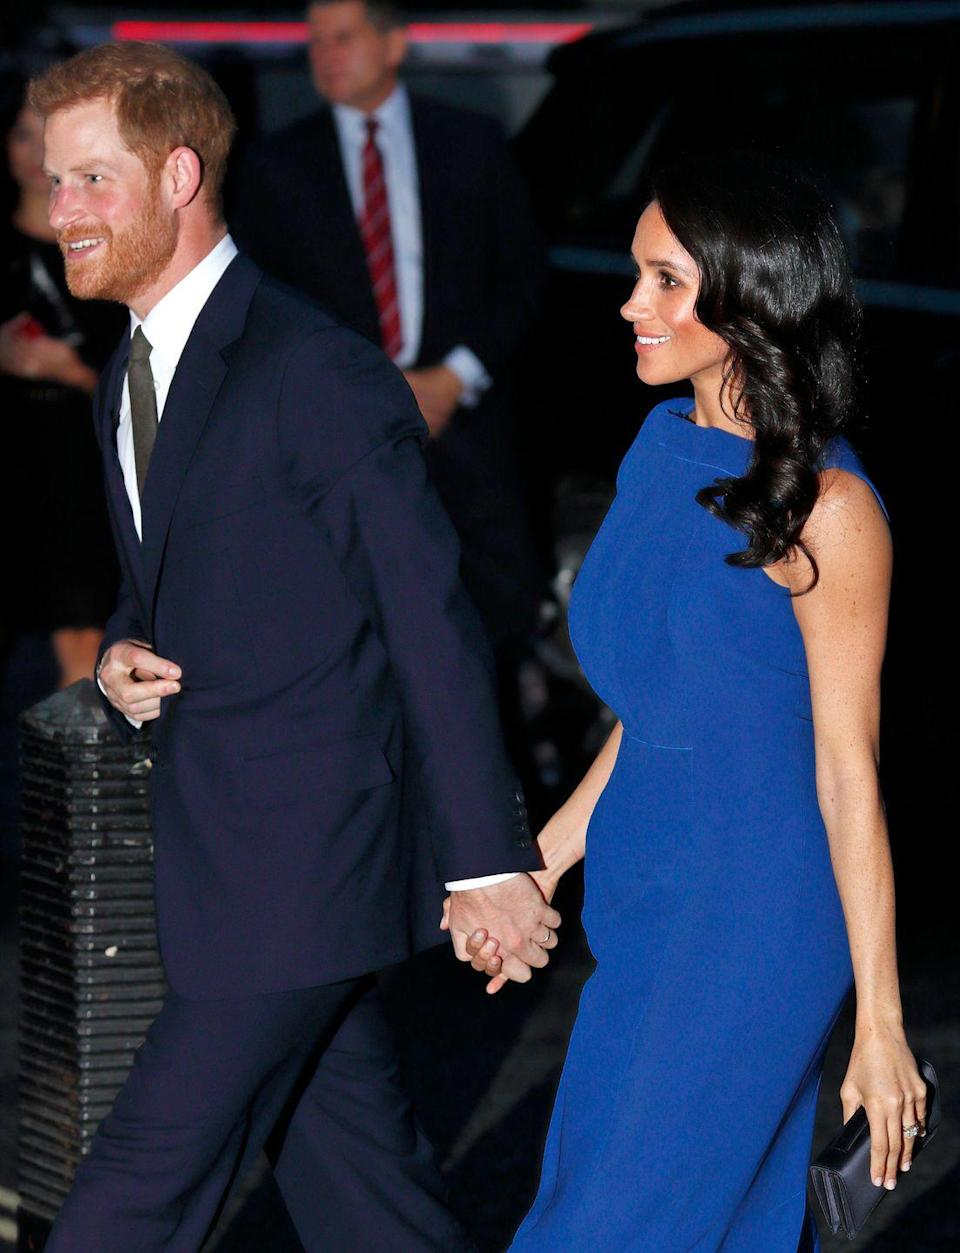 """<p>The Duke & Duchess Of Sussex looked at ease as they held hands at the'100 Days Of Peace' Commemorative Concert in Westminster. Wearing a blue <a href=""""https://www.elle.com/uk/fashion/celebrity-style/news/a42368/jason-wu-dress-meghan-markle/"""" rel=""""nofollow noopener"""" target=""""_blank"""" data-ylk=""""slk:Jason Wu dress"""" class=""""link rapid-noclick-resp"""">Jason Wu dress</a> for the occasion, Meghan beamed with pride as she walked alongside her husband, September 2018</p>"""